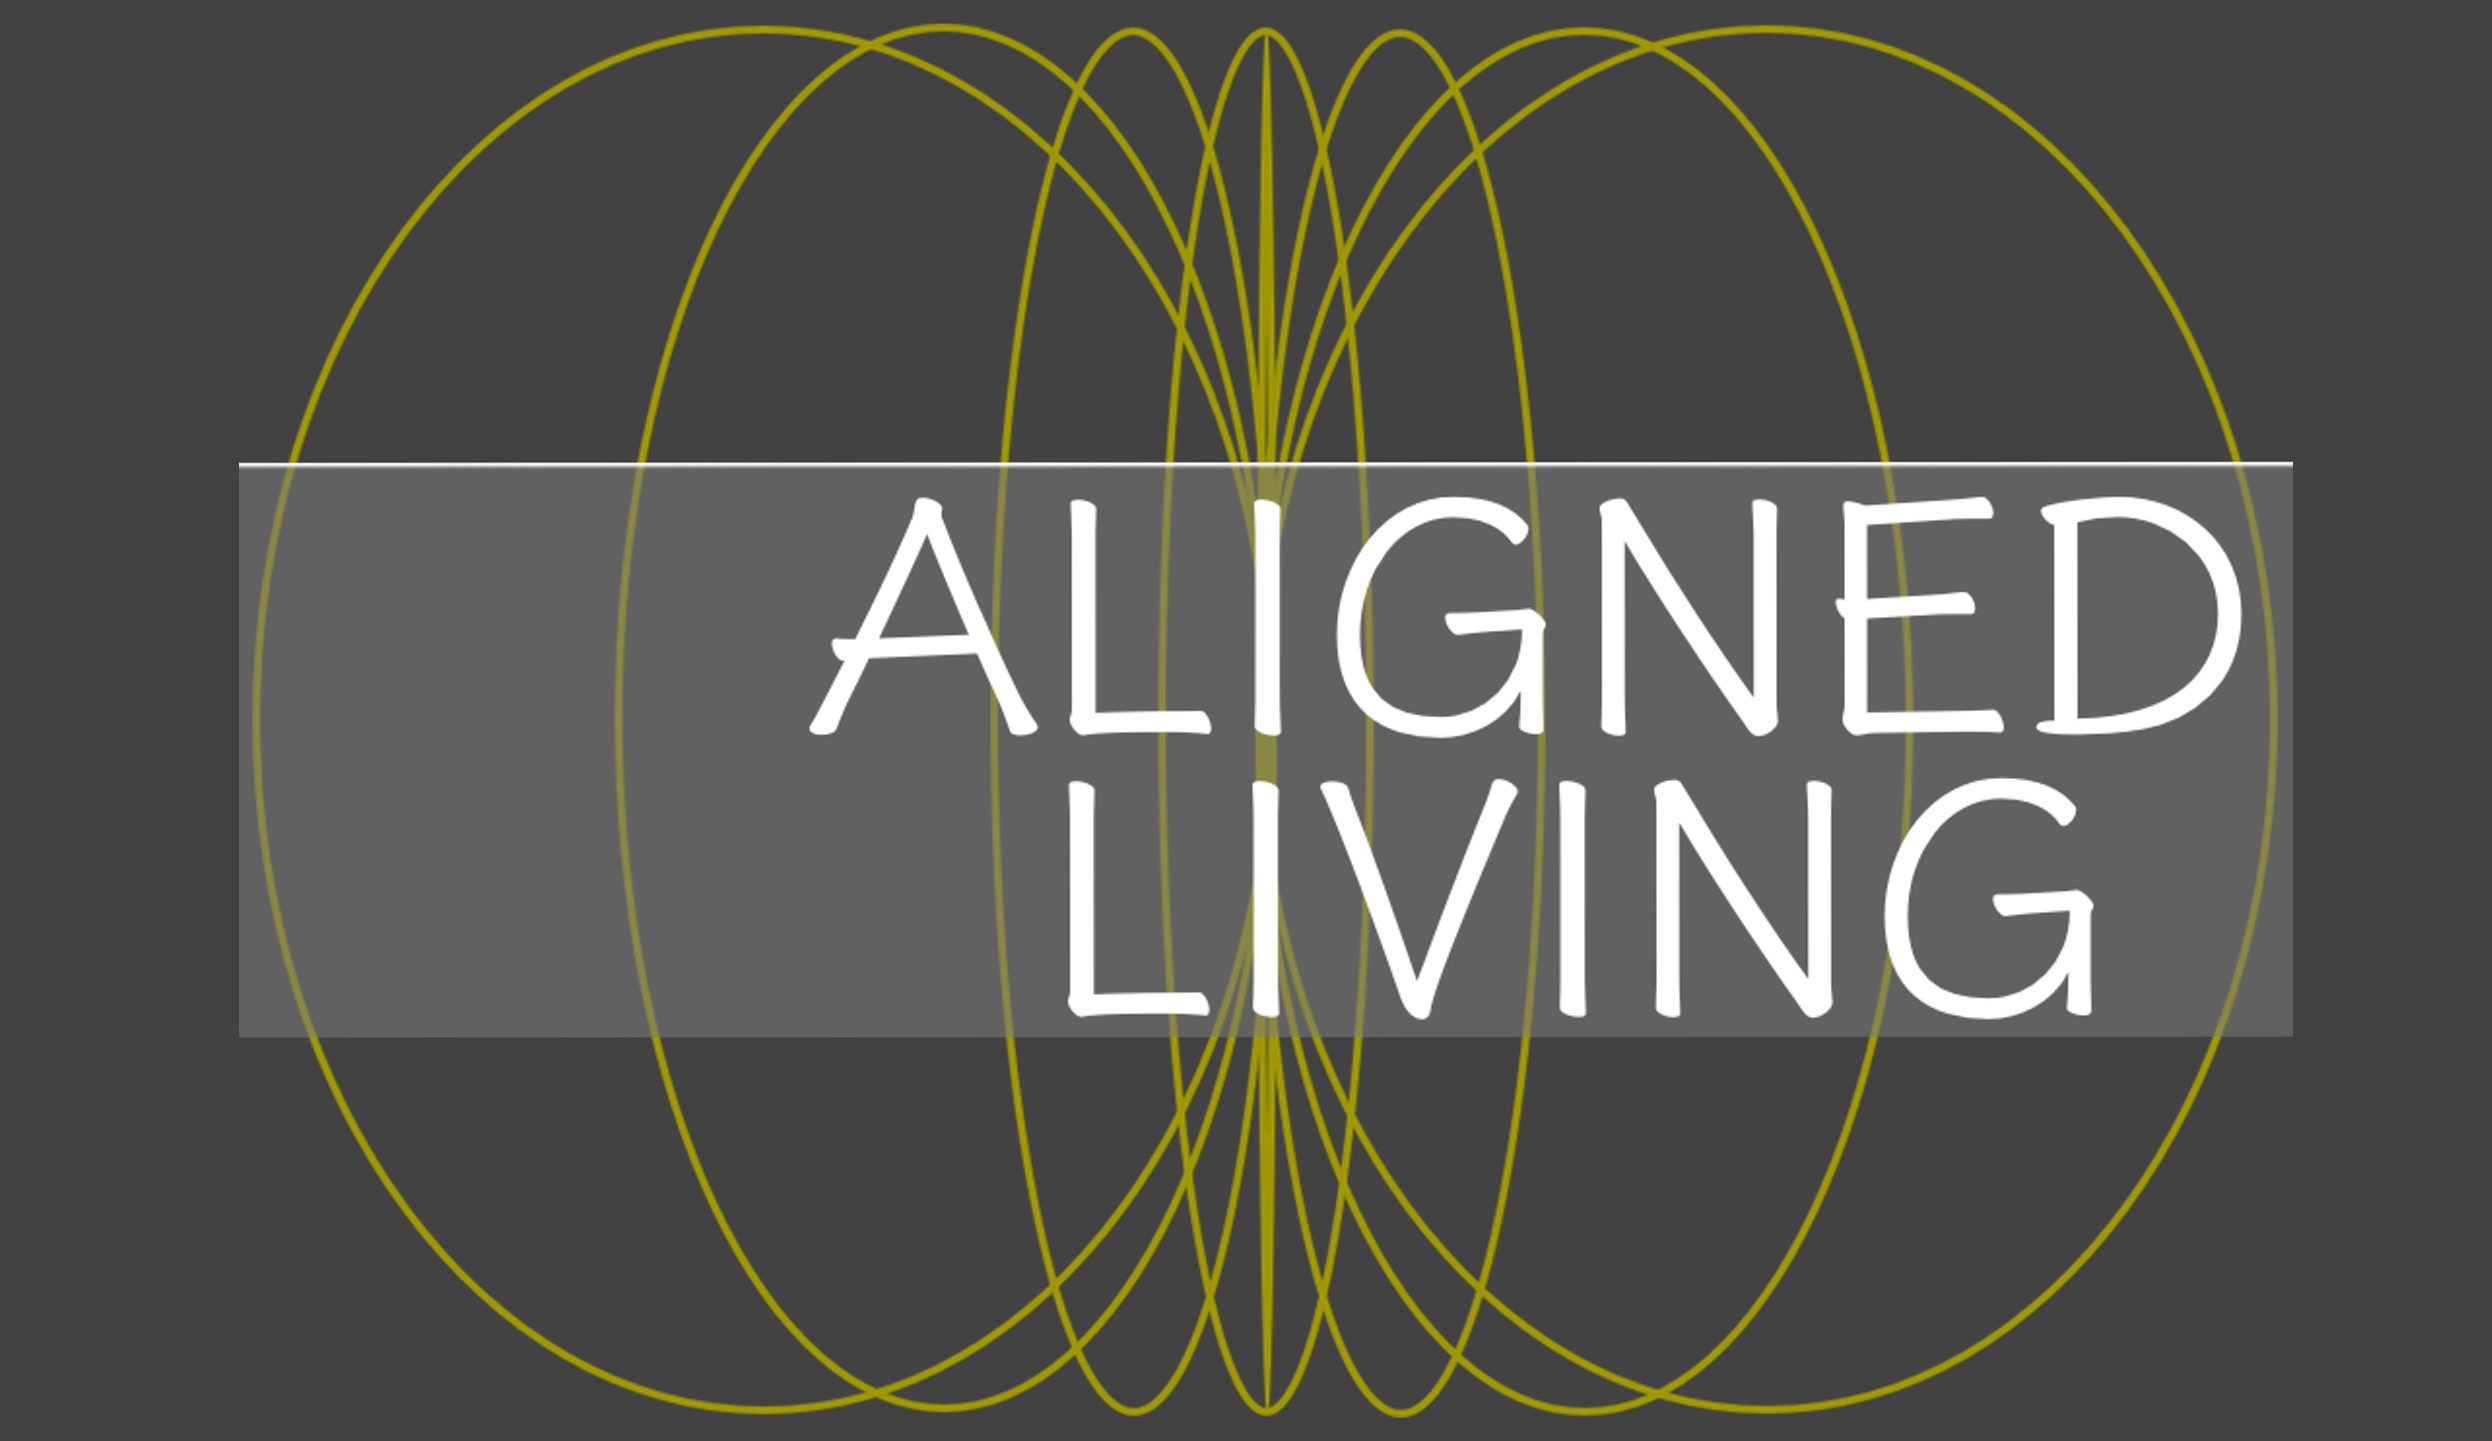 David Waldas M.S.Ed. Executive Coach, Author, and Founder of Aligned Living